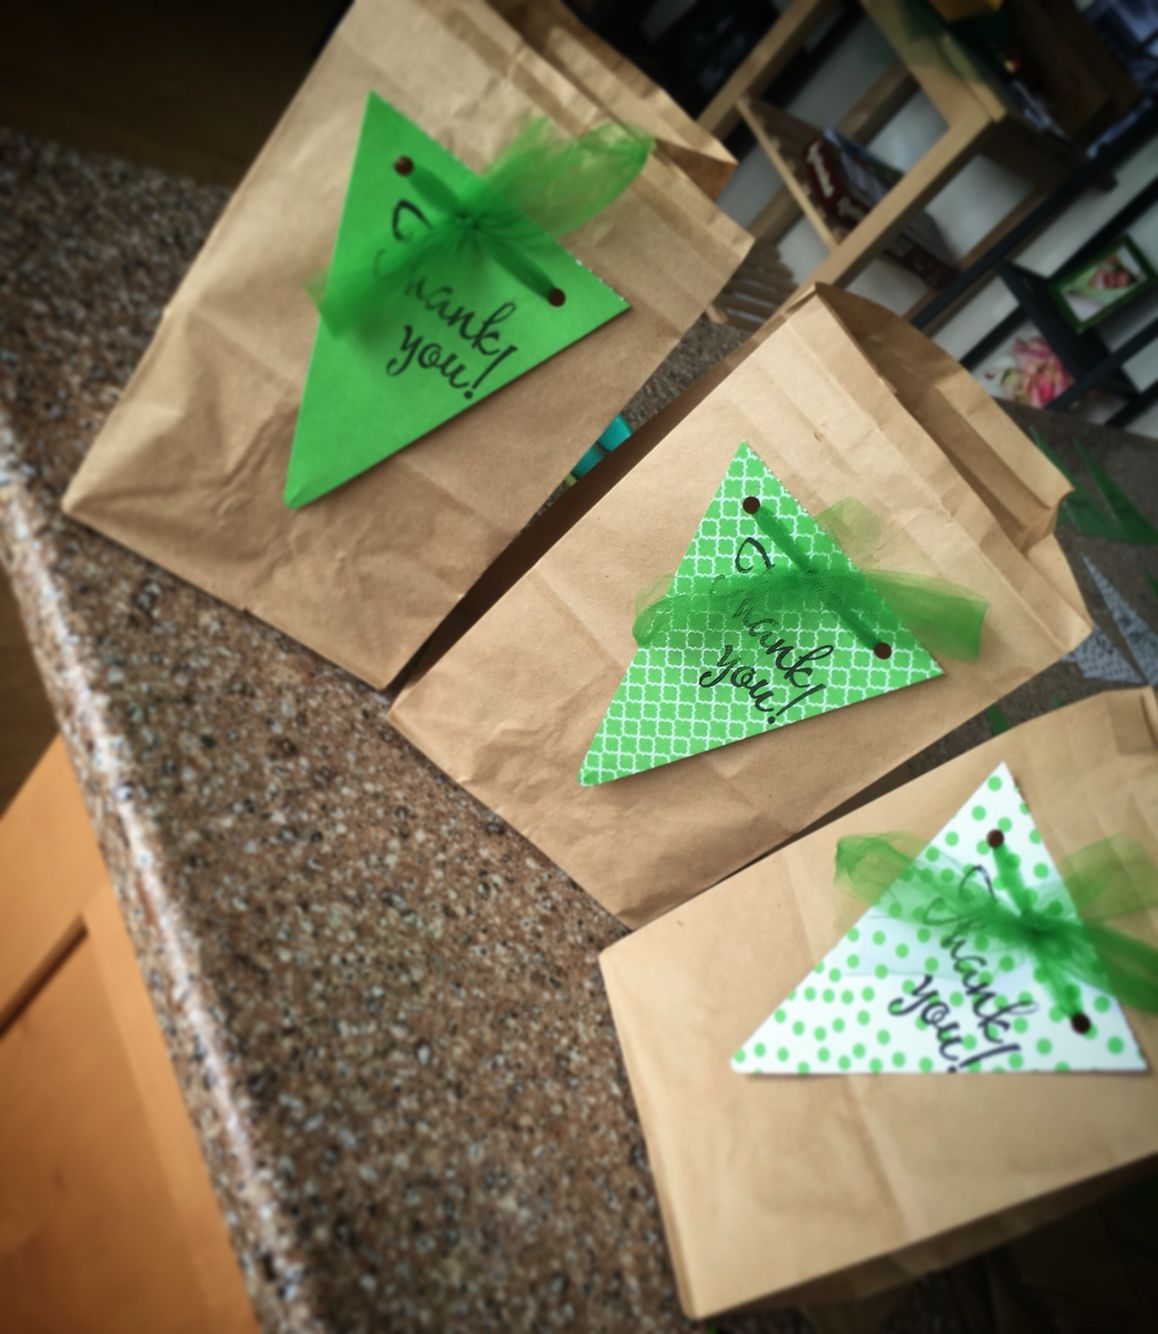 Emerald City Diy Goodie Bags All You Need Is A Hole Punch Tulle Paper And A Thank You Stamp Aileengprojects Diy Goodie Bags Goodie Bags Diy